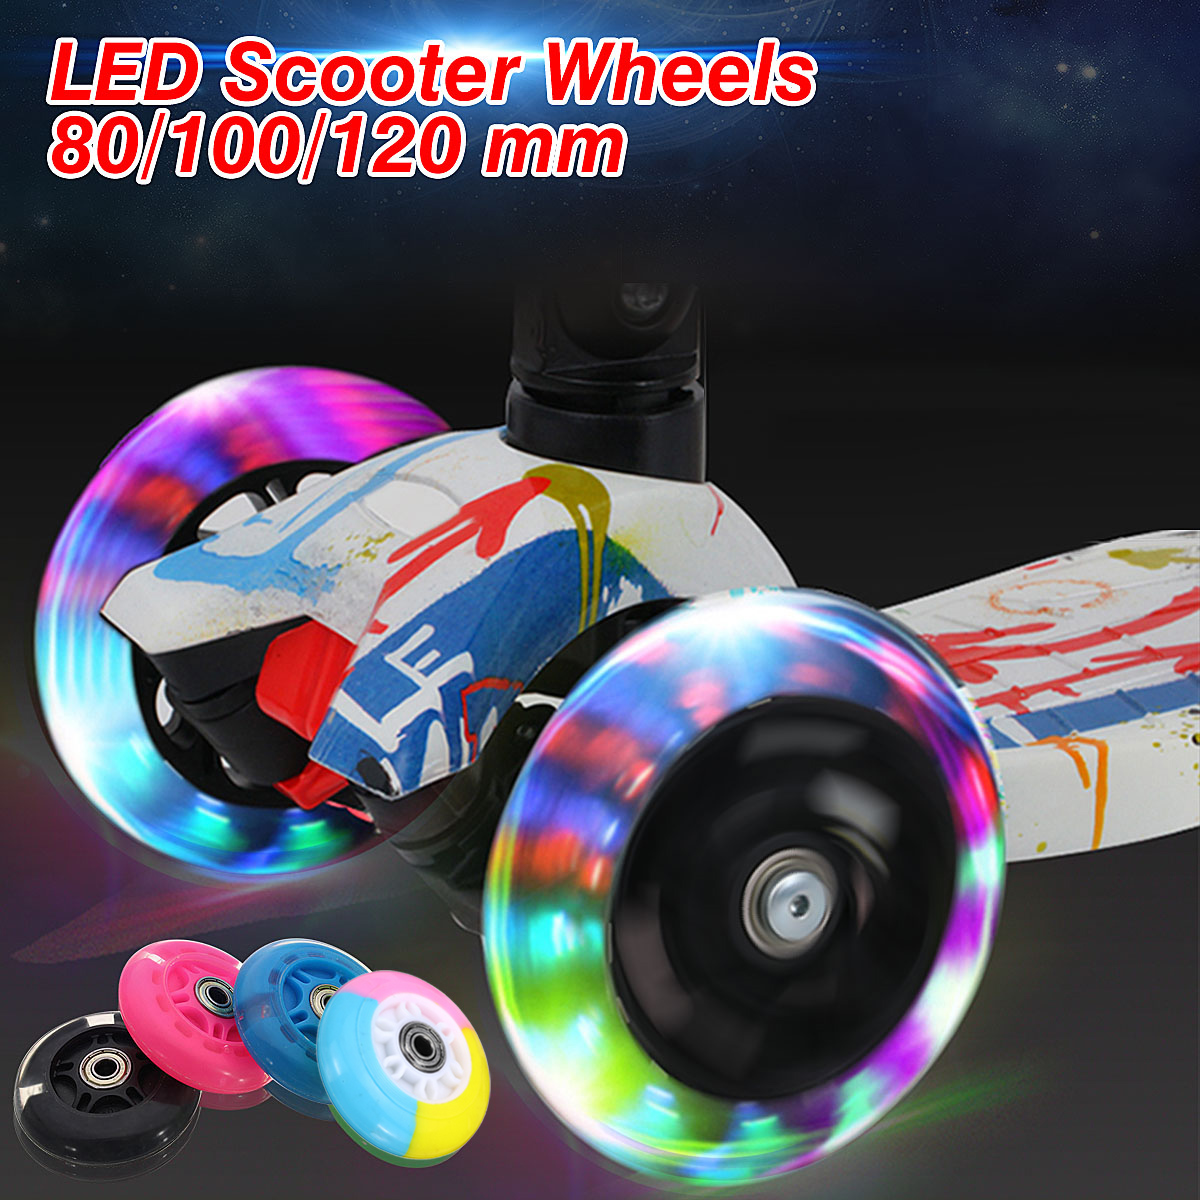 2PCS Scooter Wheel LED Flash Light Up Scooter Wheel for Mini Scooter with 2 ABED-7 Bearings 80mm 100mm 120mm